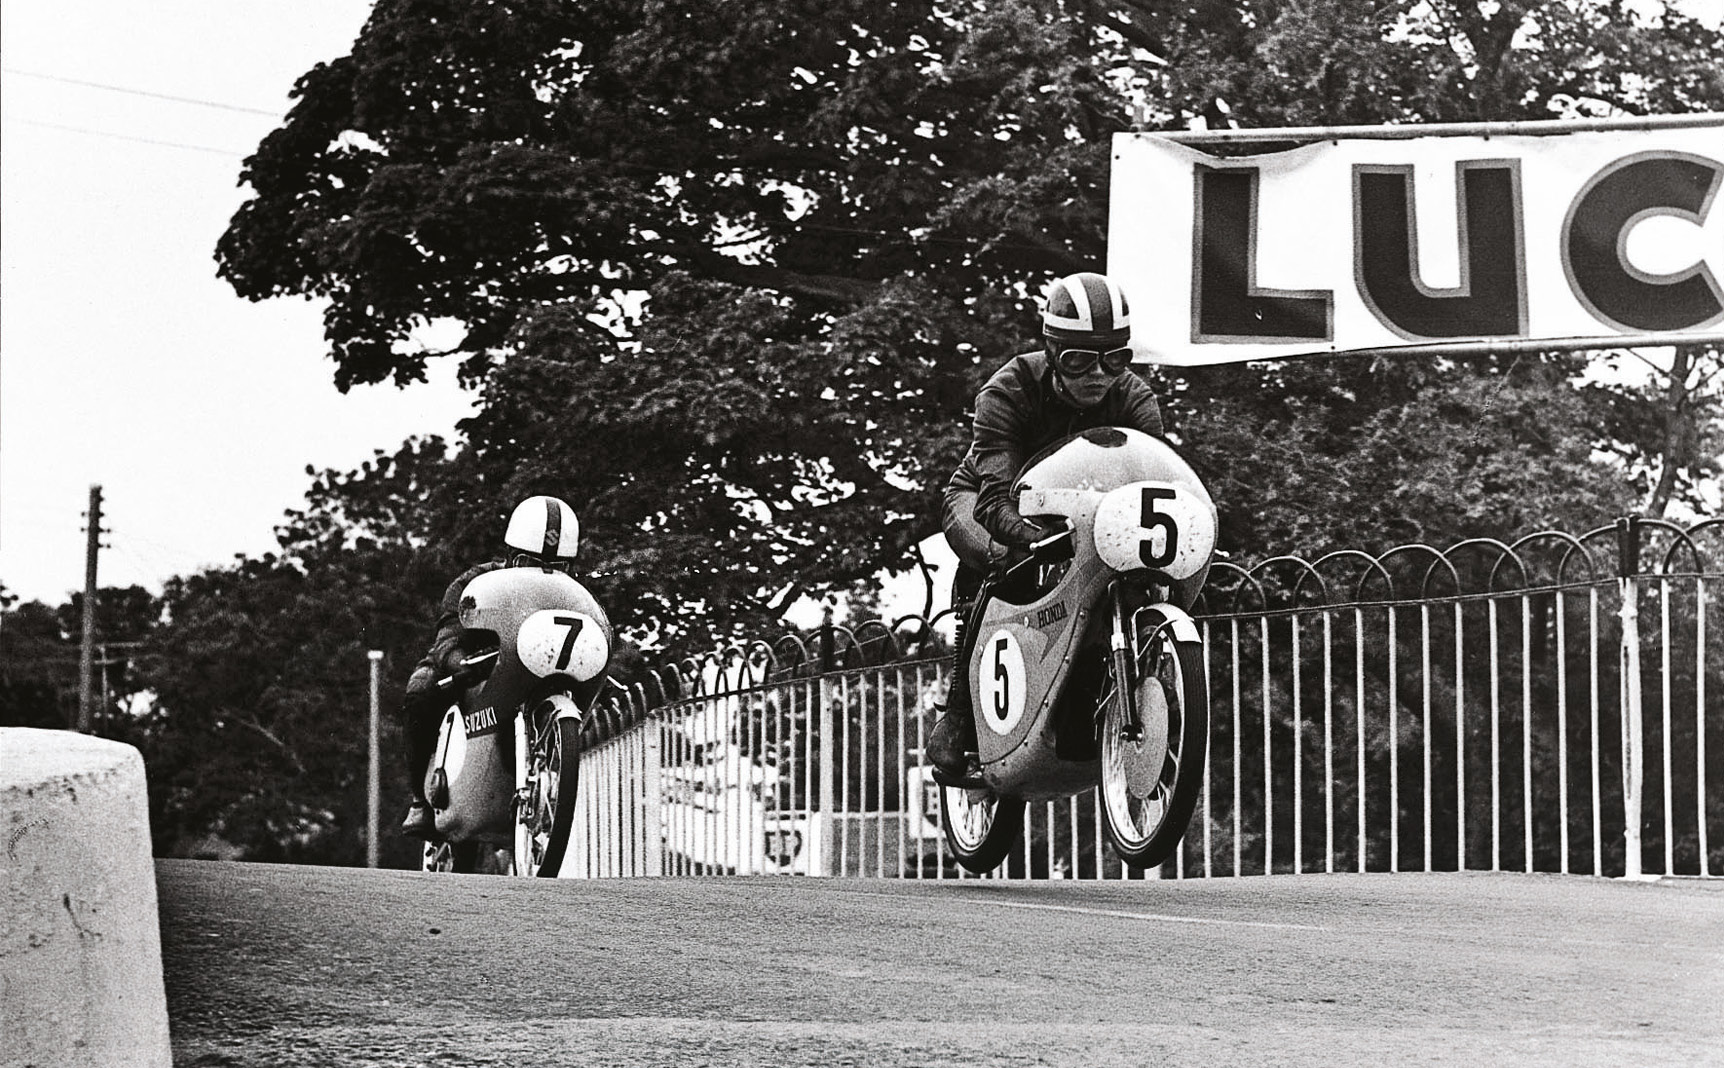 Bryans at full flight on Honda's 50cc twin, leading Suzuki's Mitsuo Itoh during the Isle of Man TT